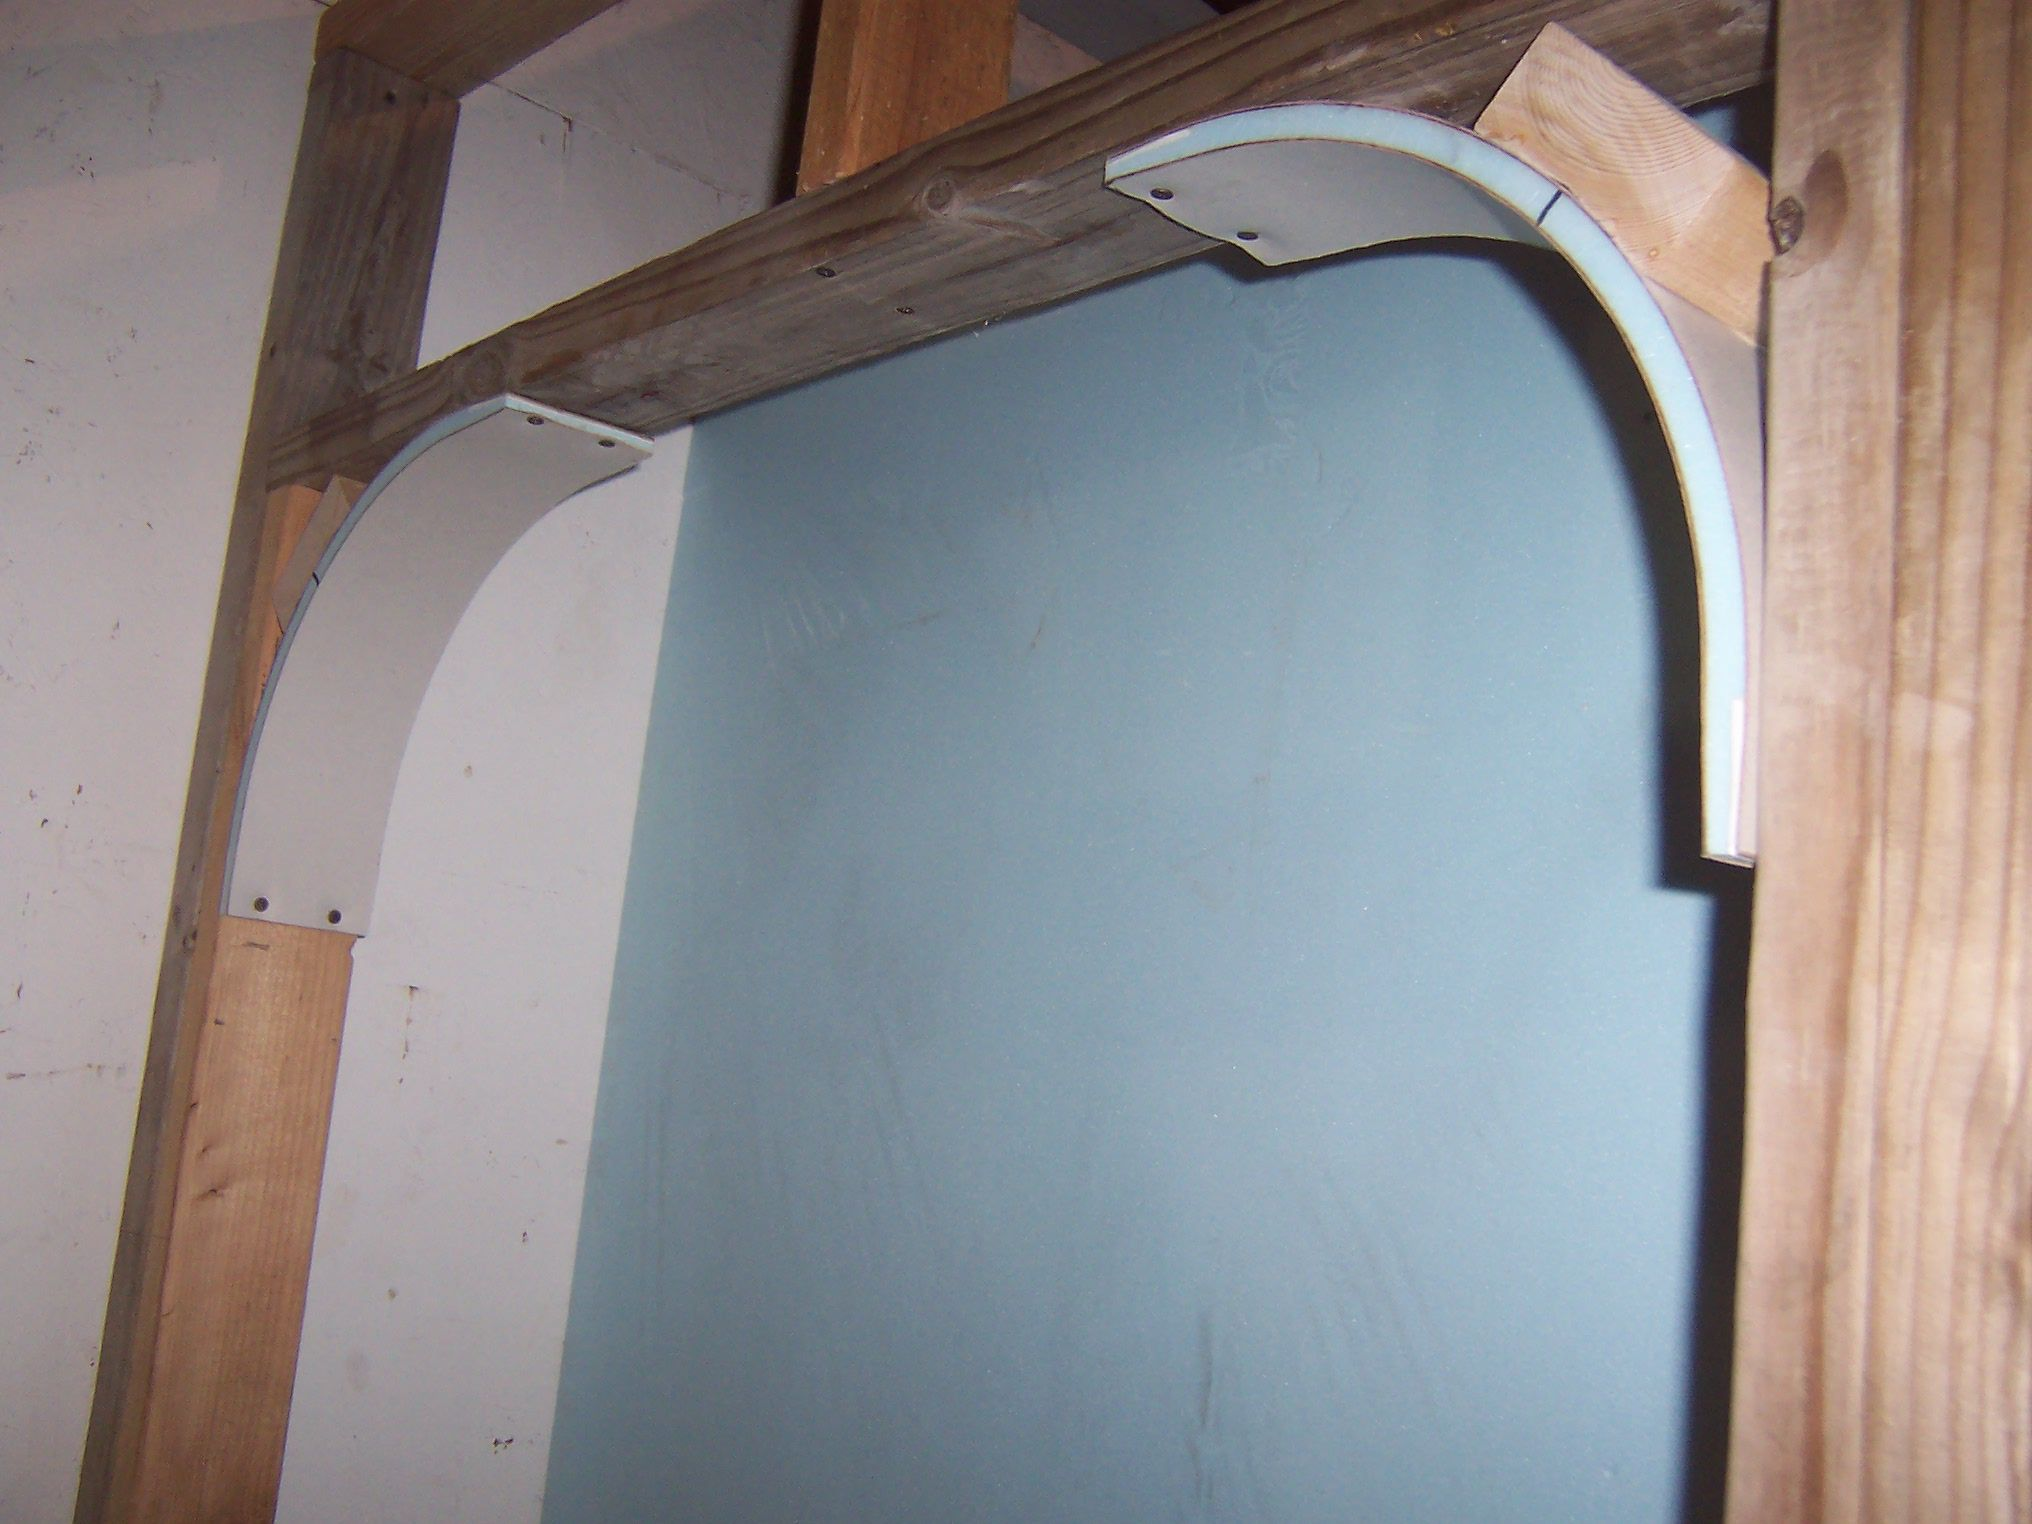 Pre Made Drywall Arches Simplest Possible Way To Create Arches No Drywall Bending Necessary 989 636 1025 Archway Arched Barn Door Drywall